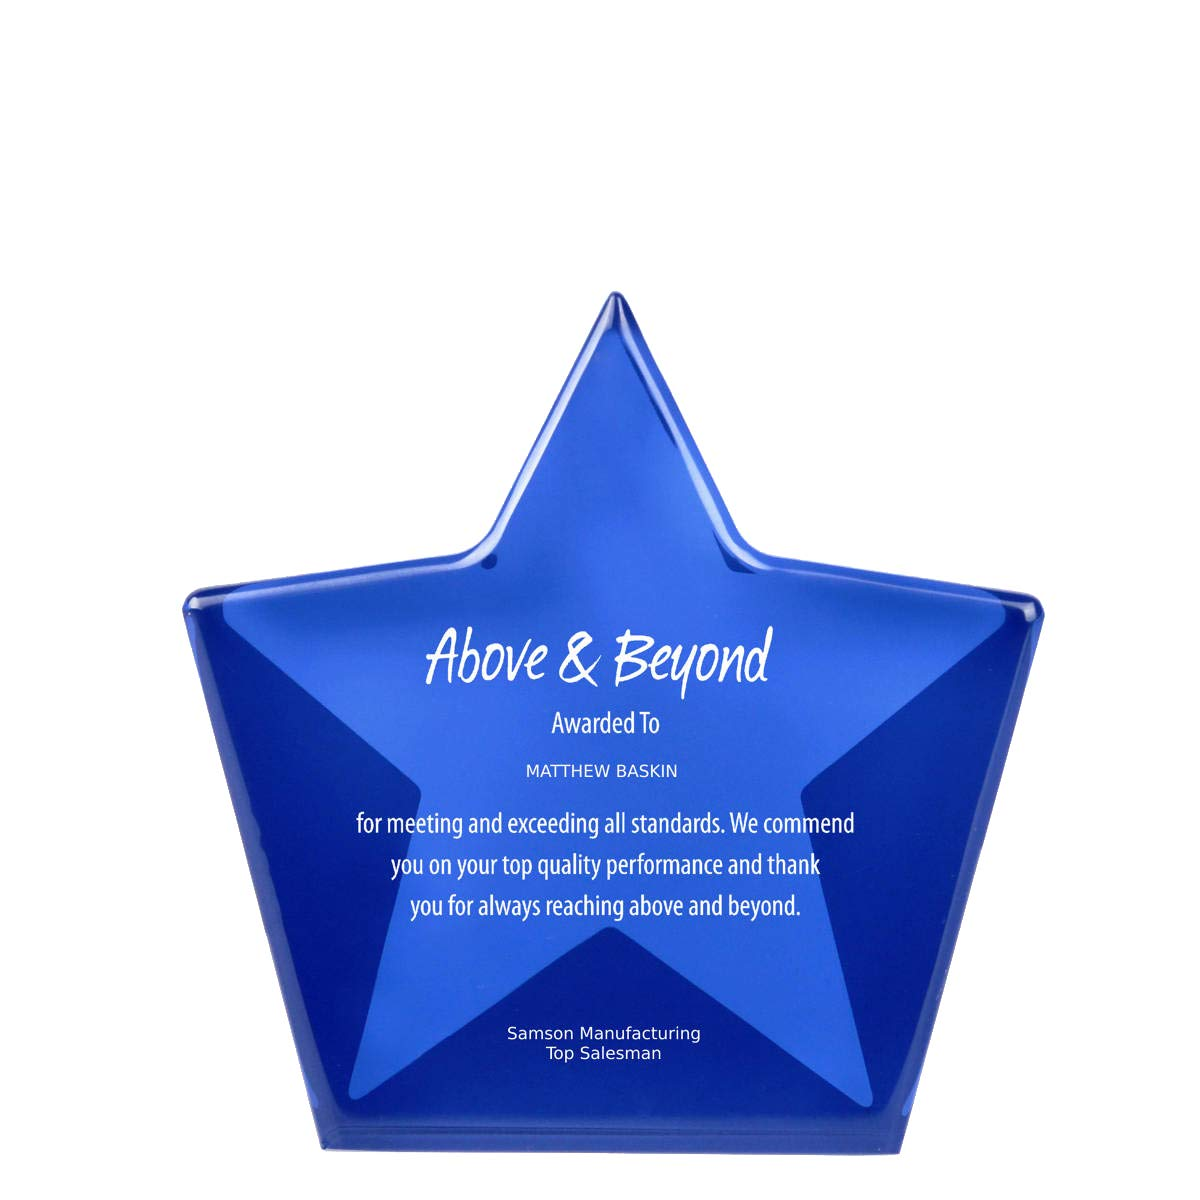 Engraved Trophy - Blue Acrylic- Star Shape Award for Employees - Personalized Engraving Up to Three Lines and Pre-Written Verse Selection - Comes in Gift Box by Baudville